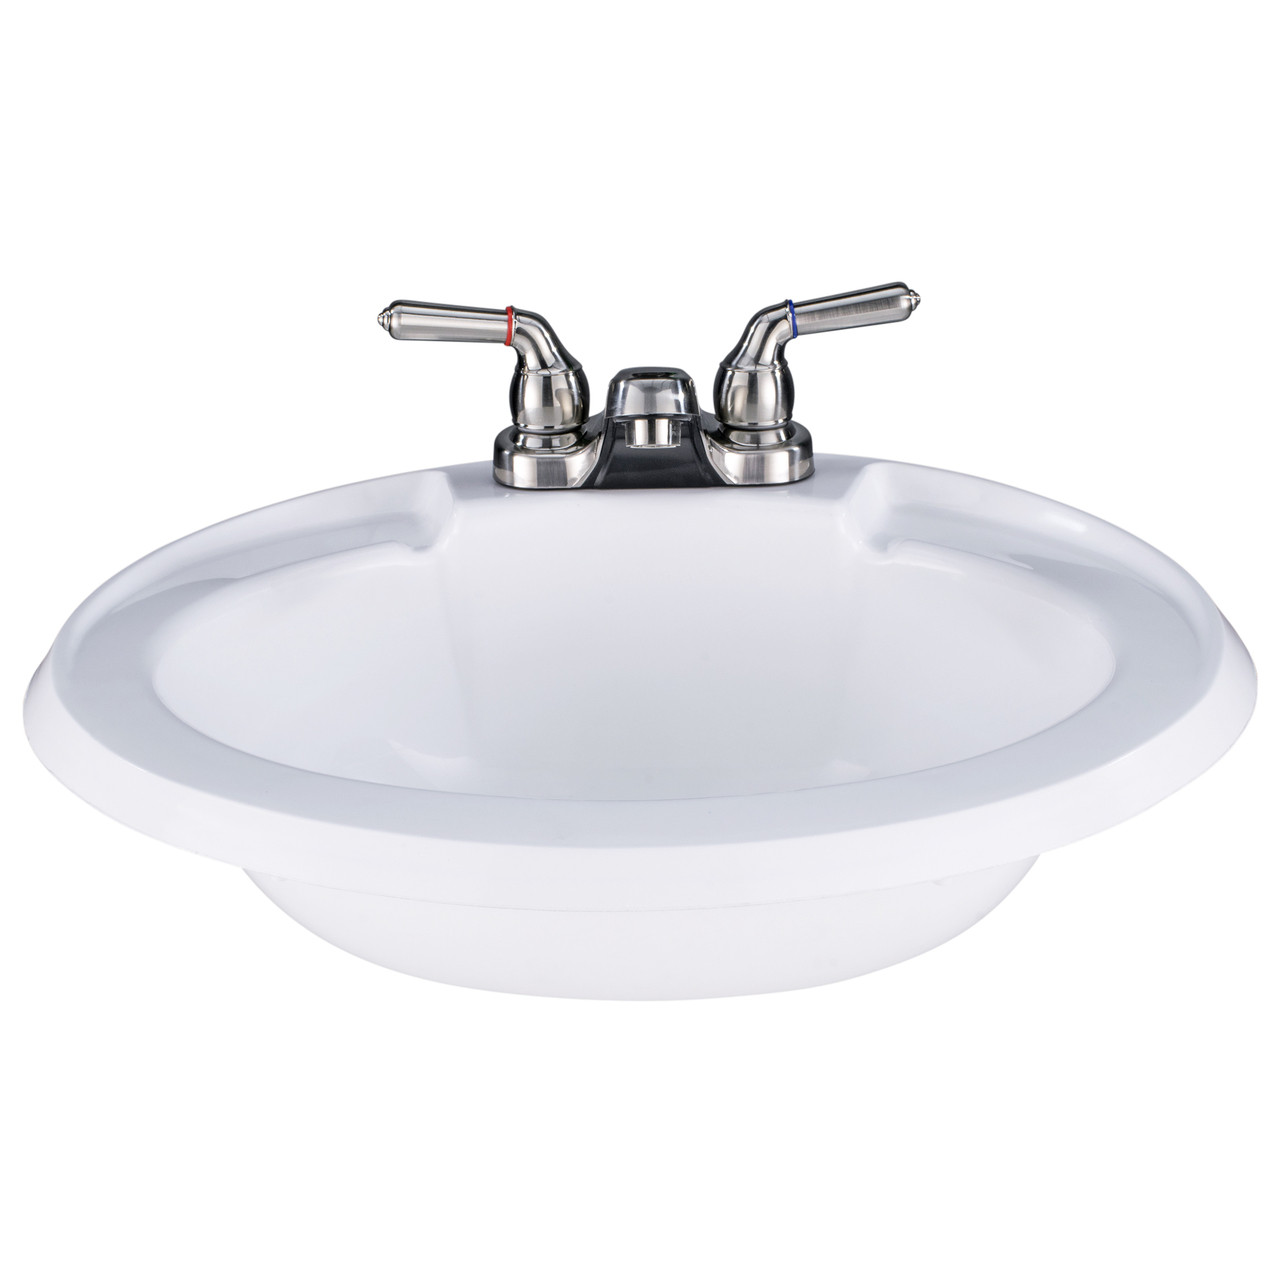 White Oval RV Bathroom Sink w/ Brushed Nickel Faucet Combo - RecPro